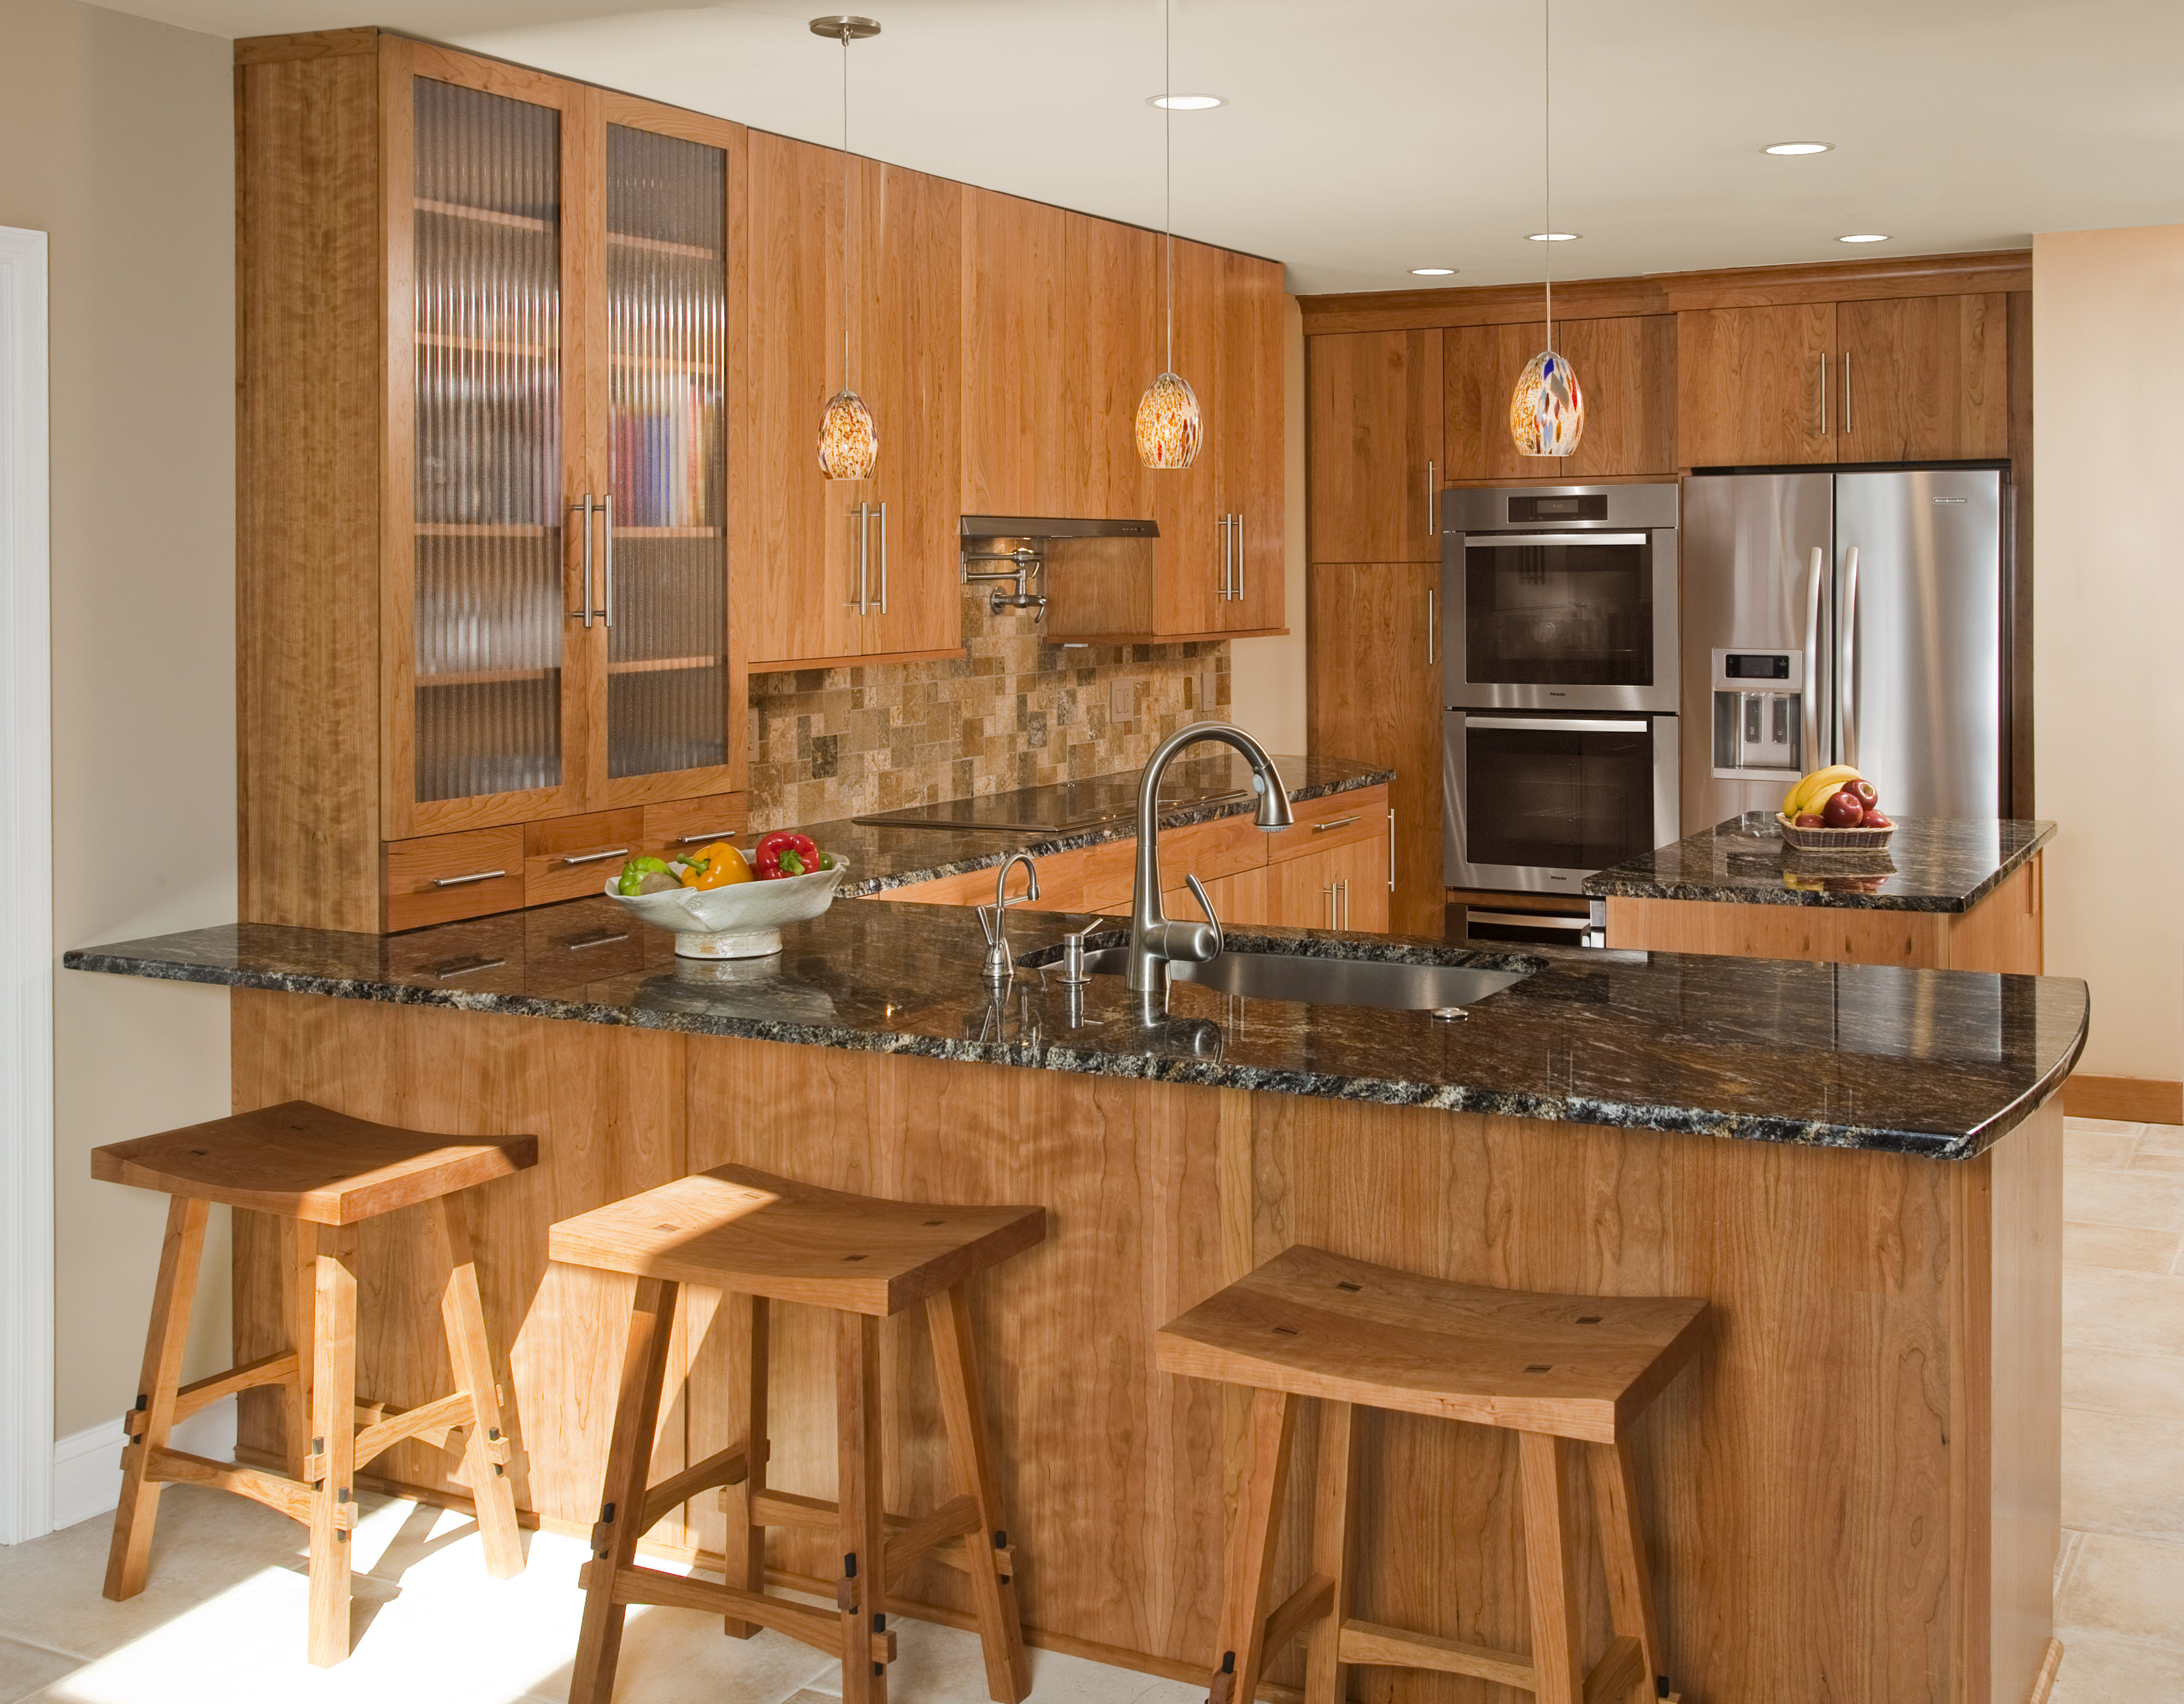 2017 for American kitchen design gallery